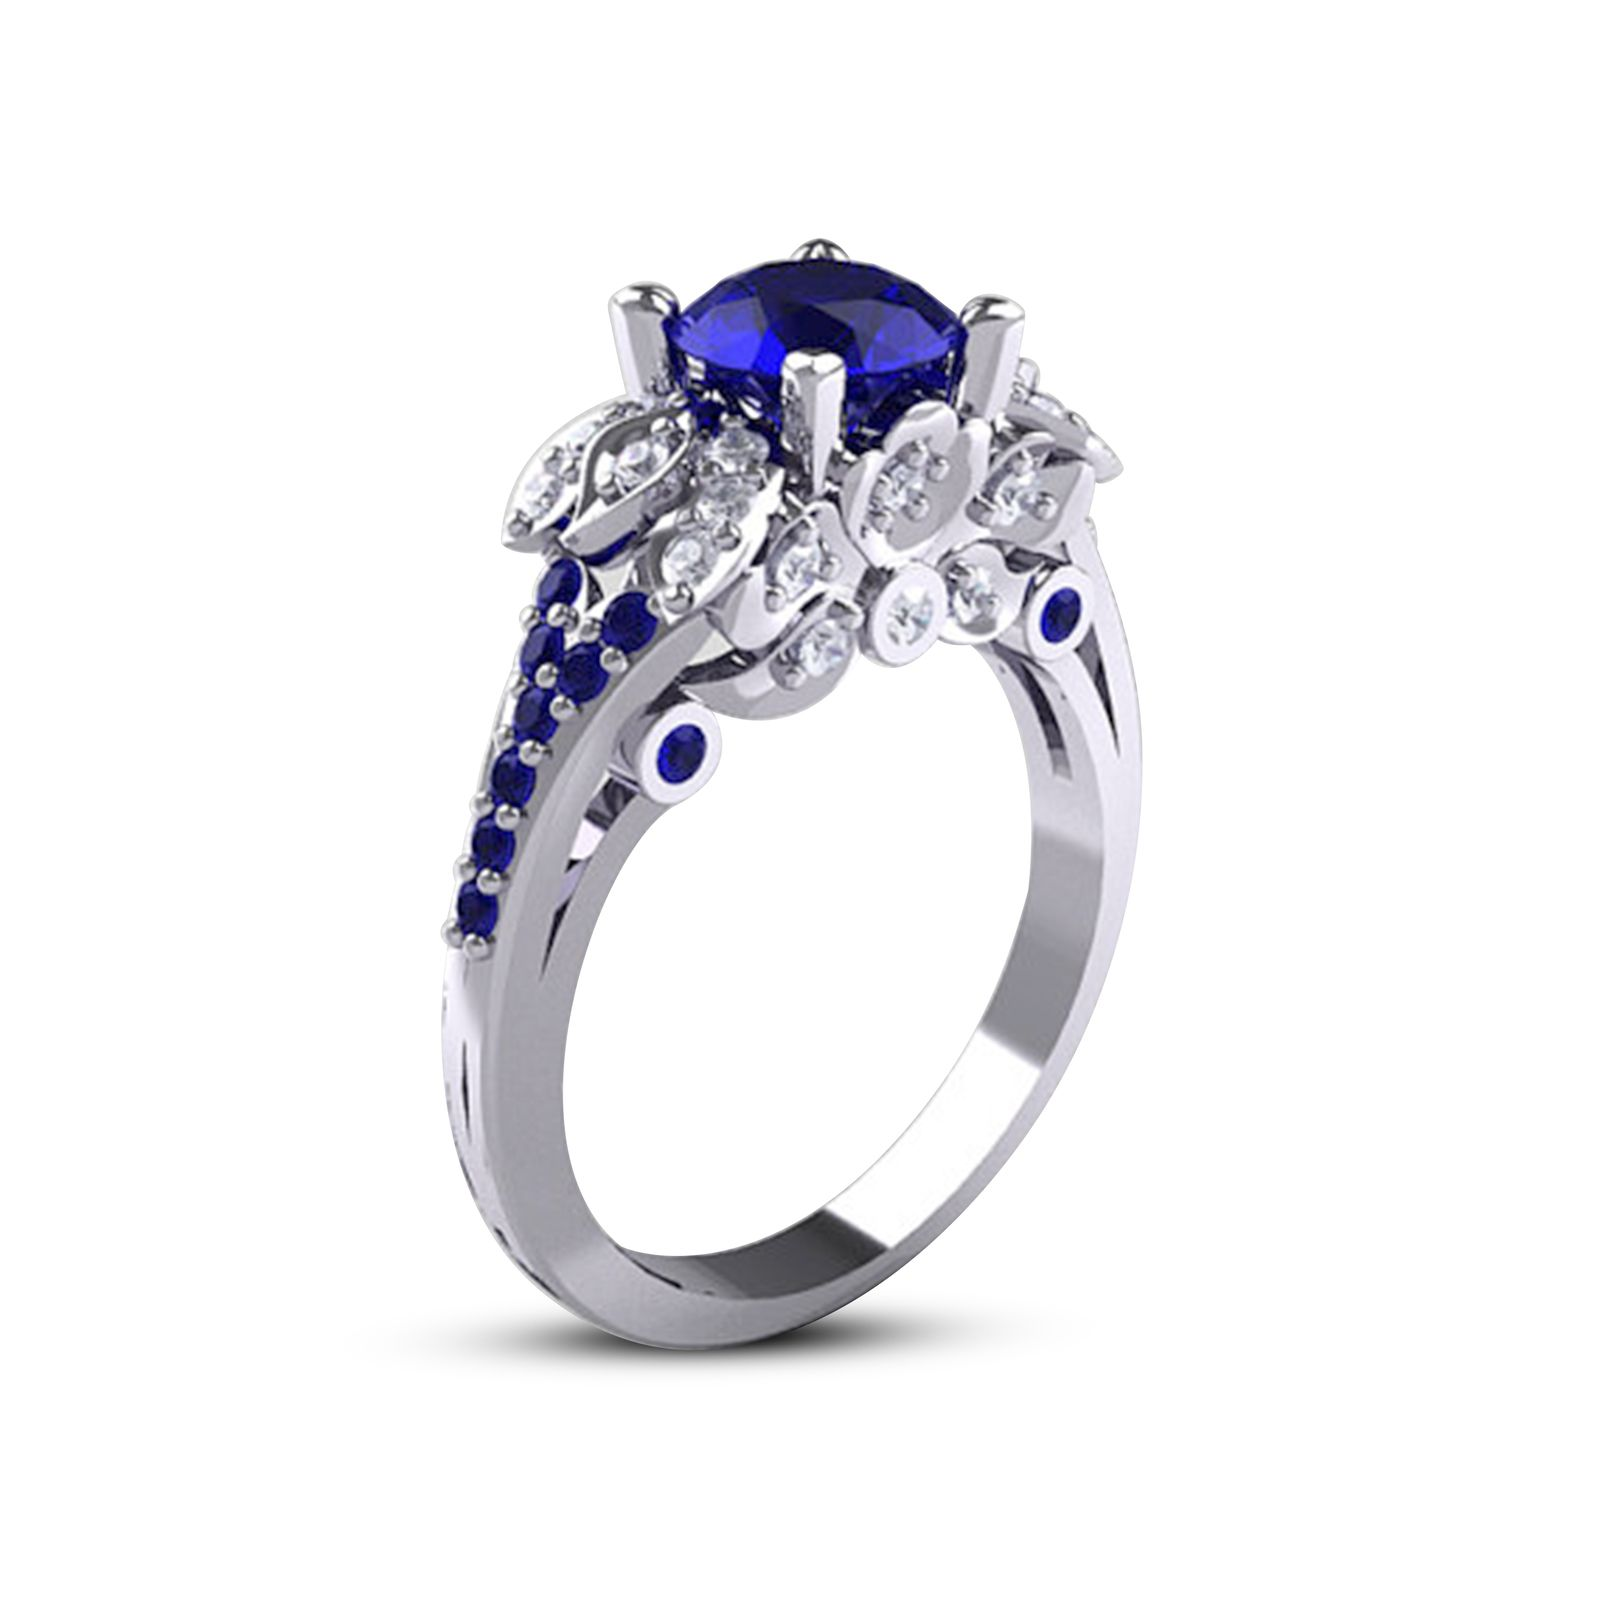 solitaire overstock auriya princess today cut free sapphire ring blue watches jewelry gold product shipping